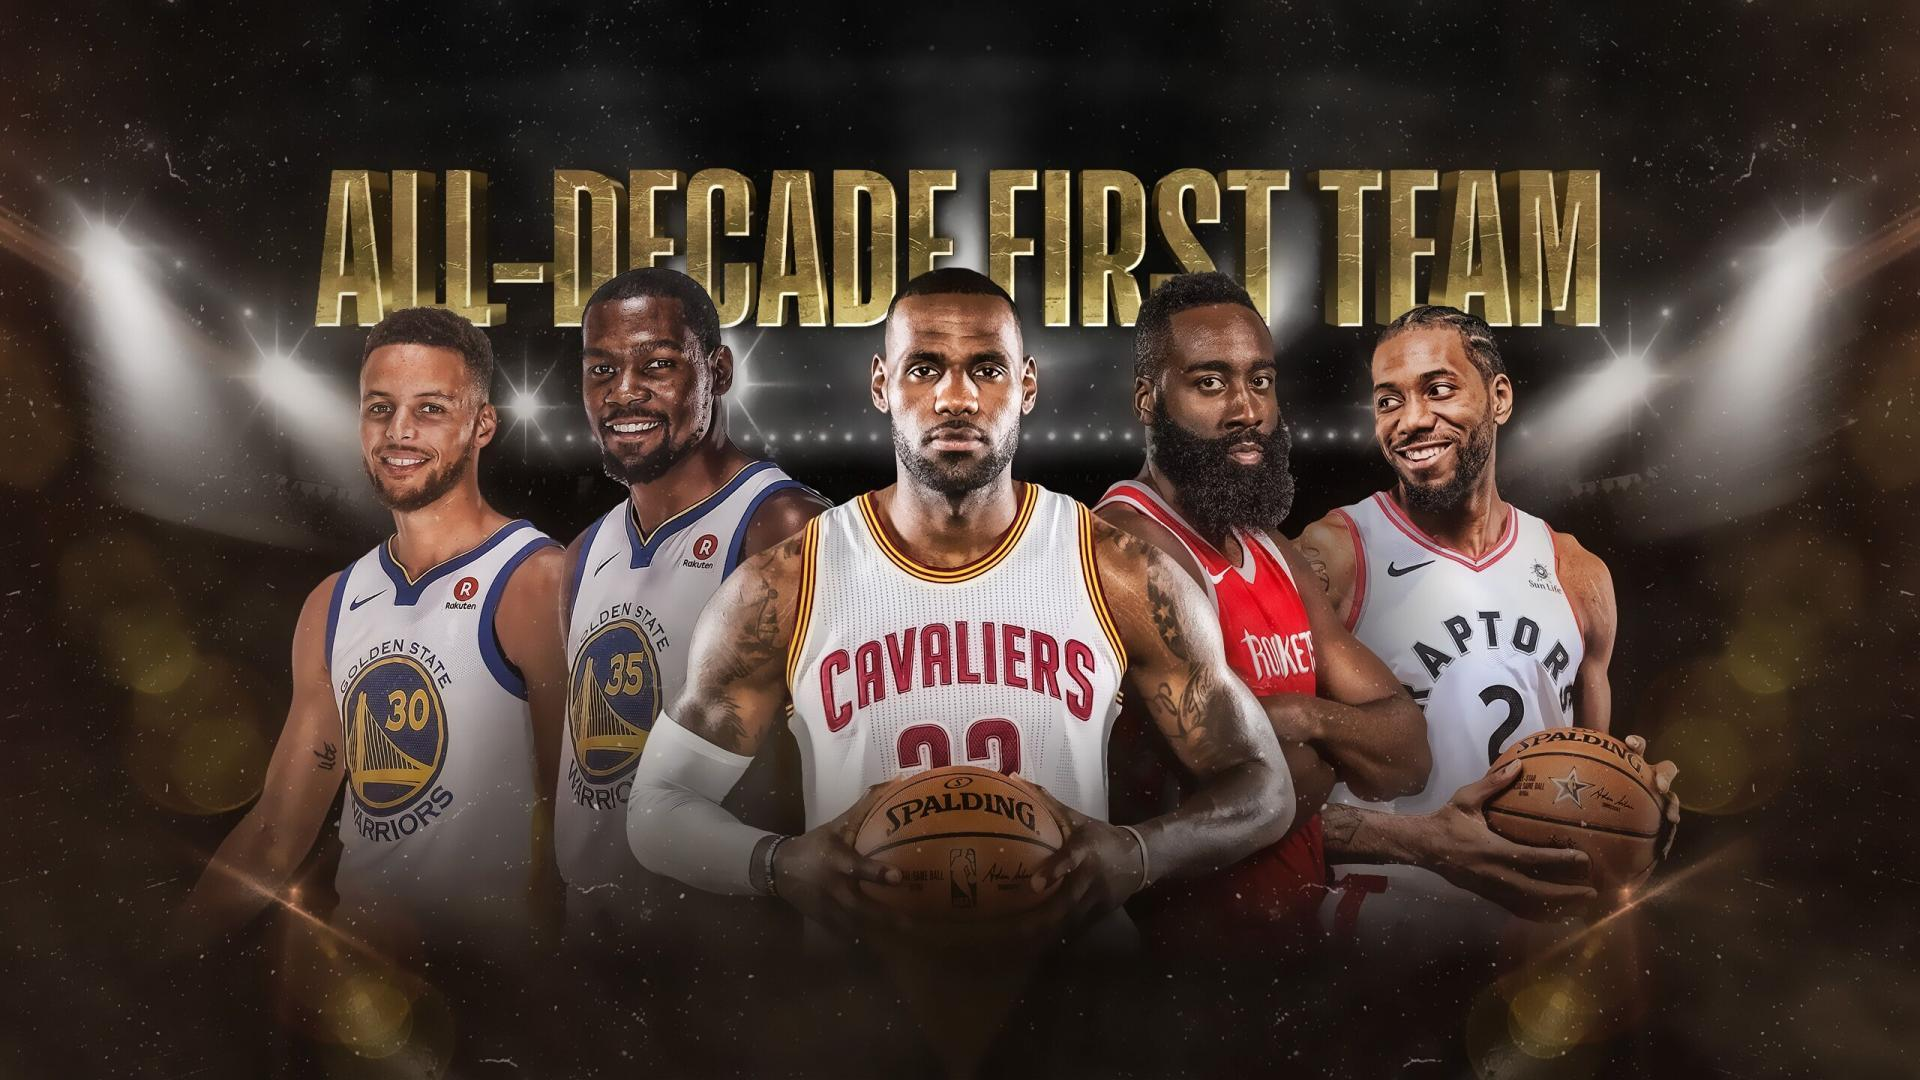 La NBA All-Decade First Team : Stephen Curry, Kevin Durant, LeBron James, James Harden, Kawhi Leonard. (Illustration : NBA)